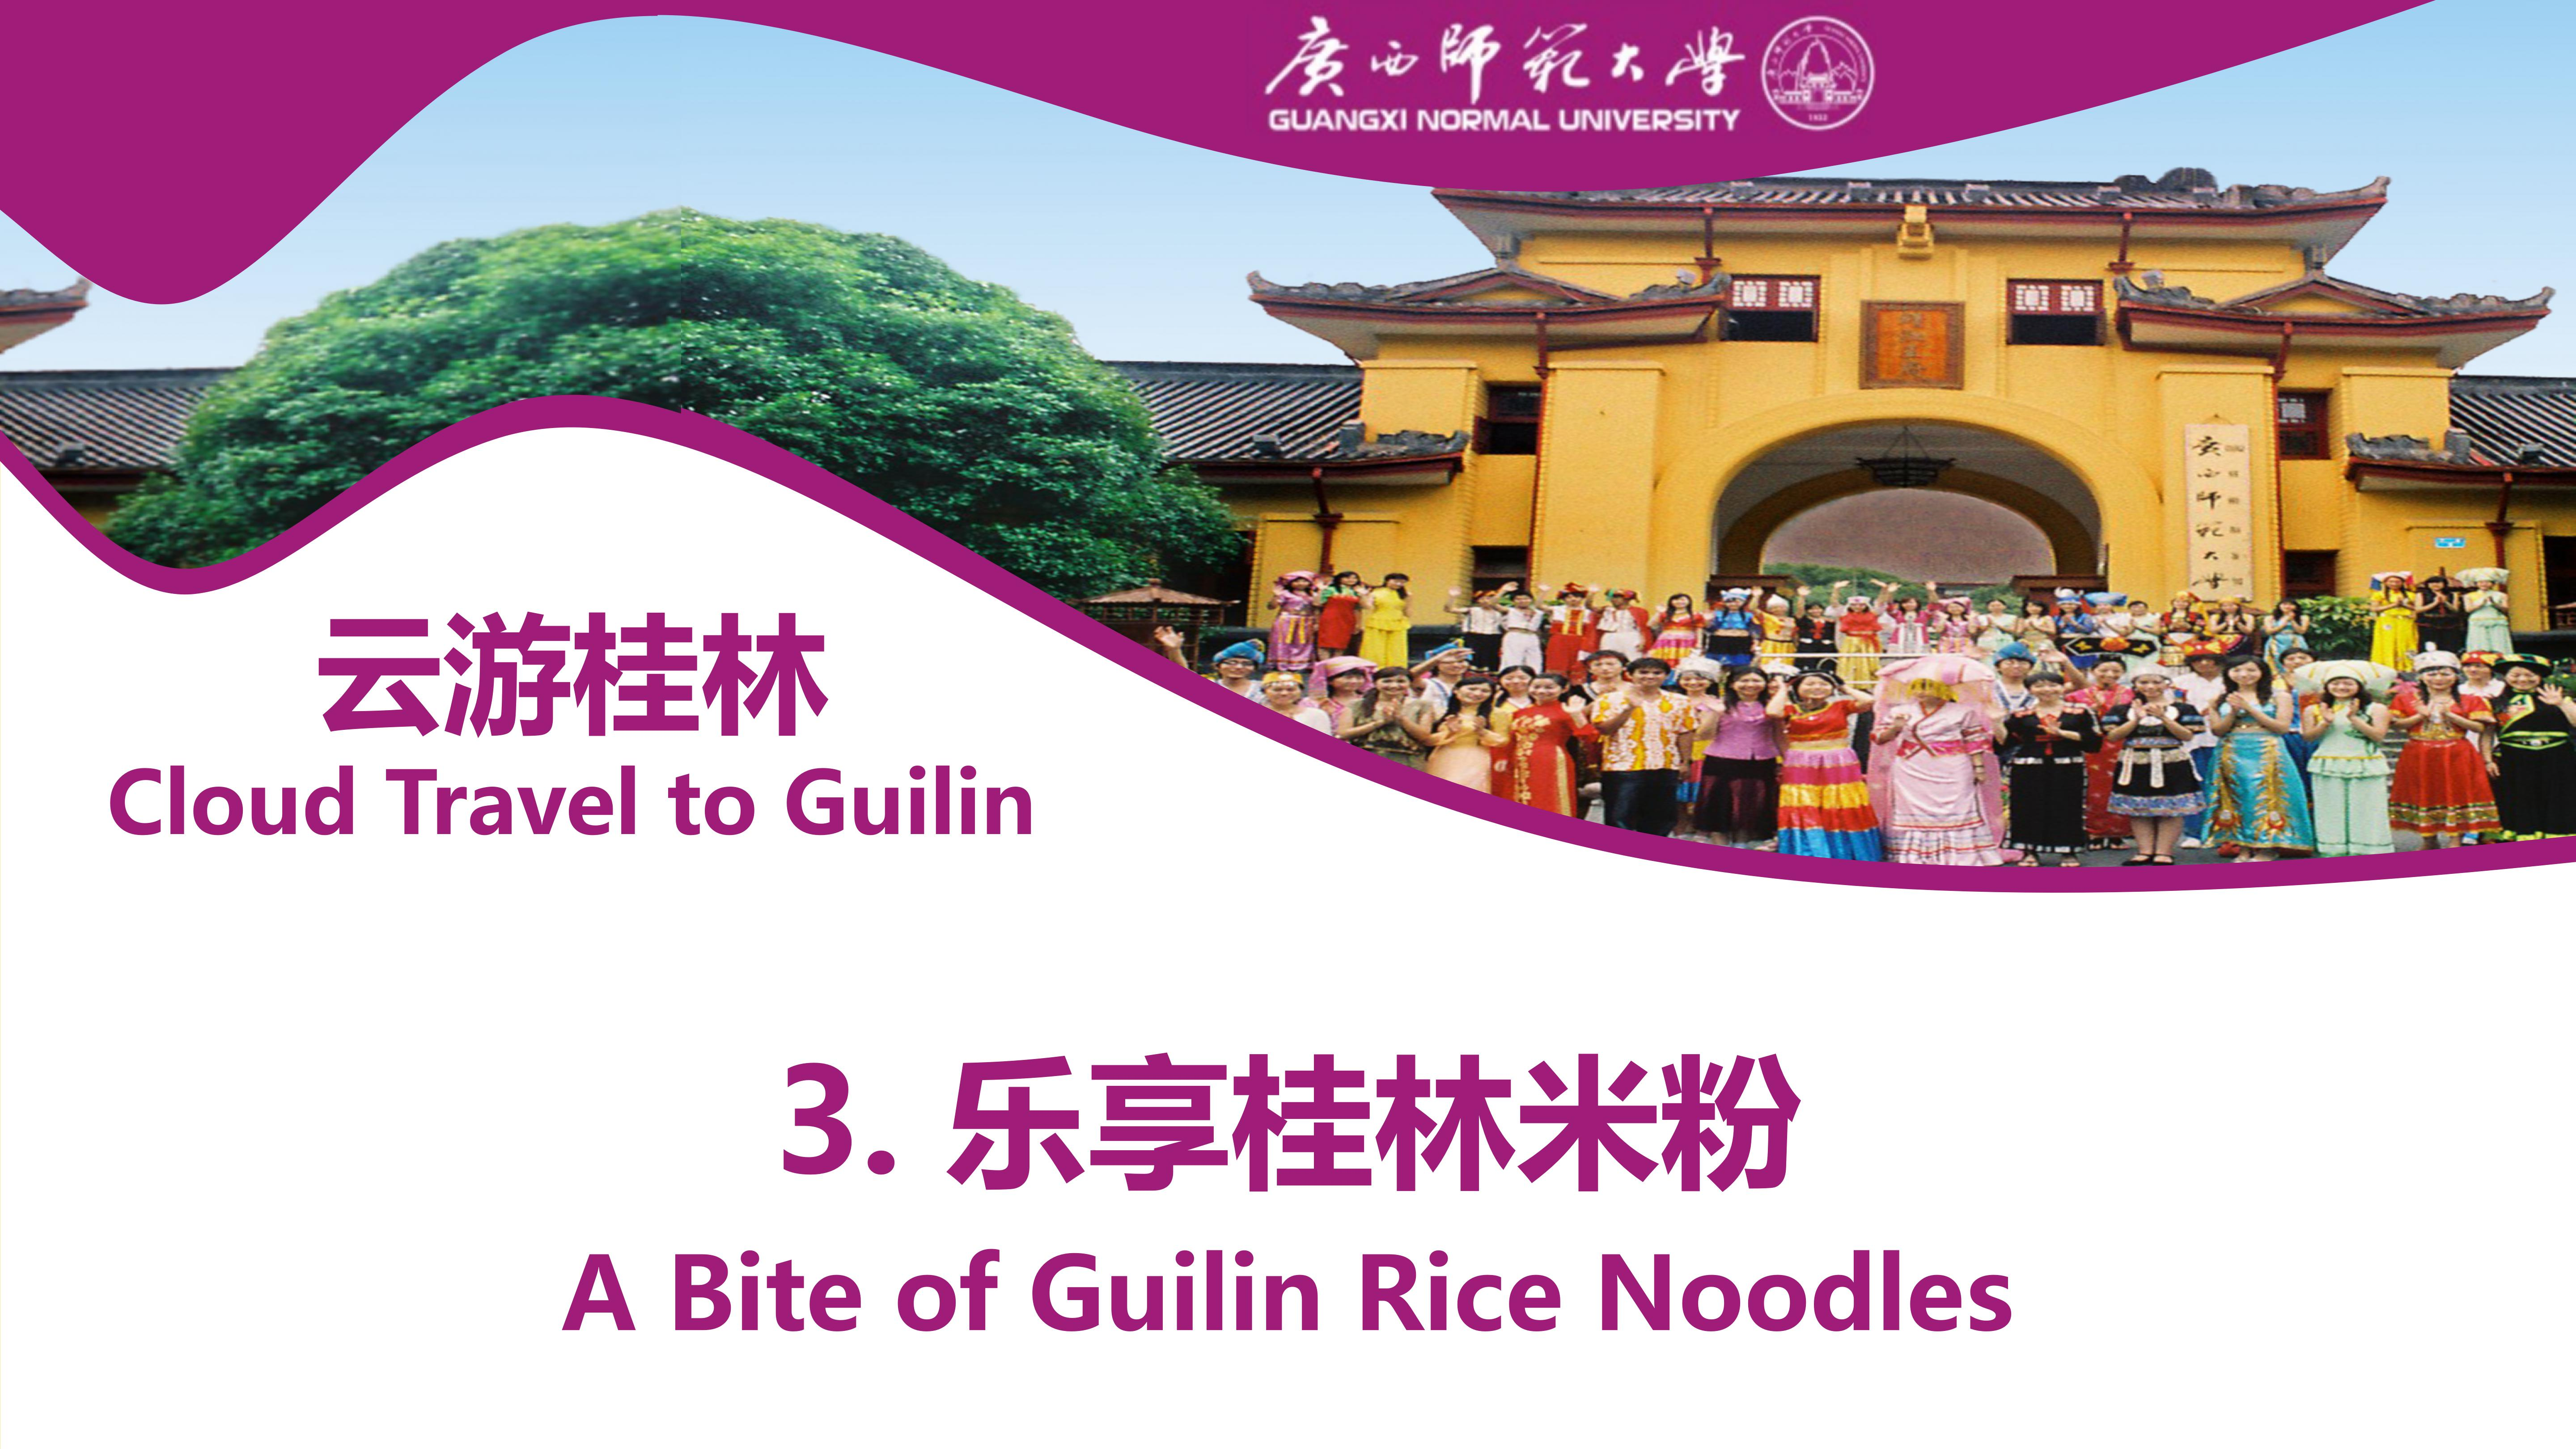 A Bite of Guilin Rice Noodles